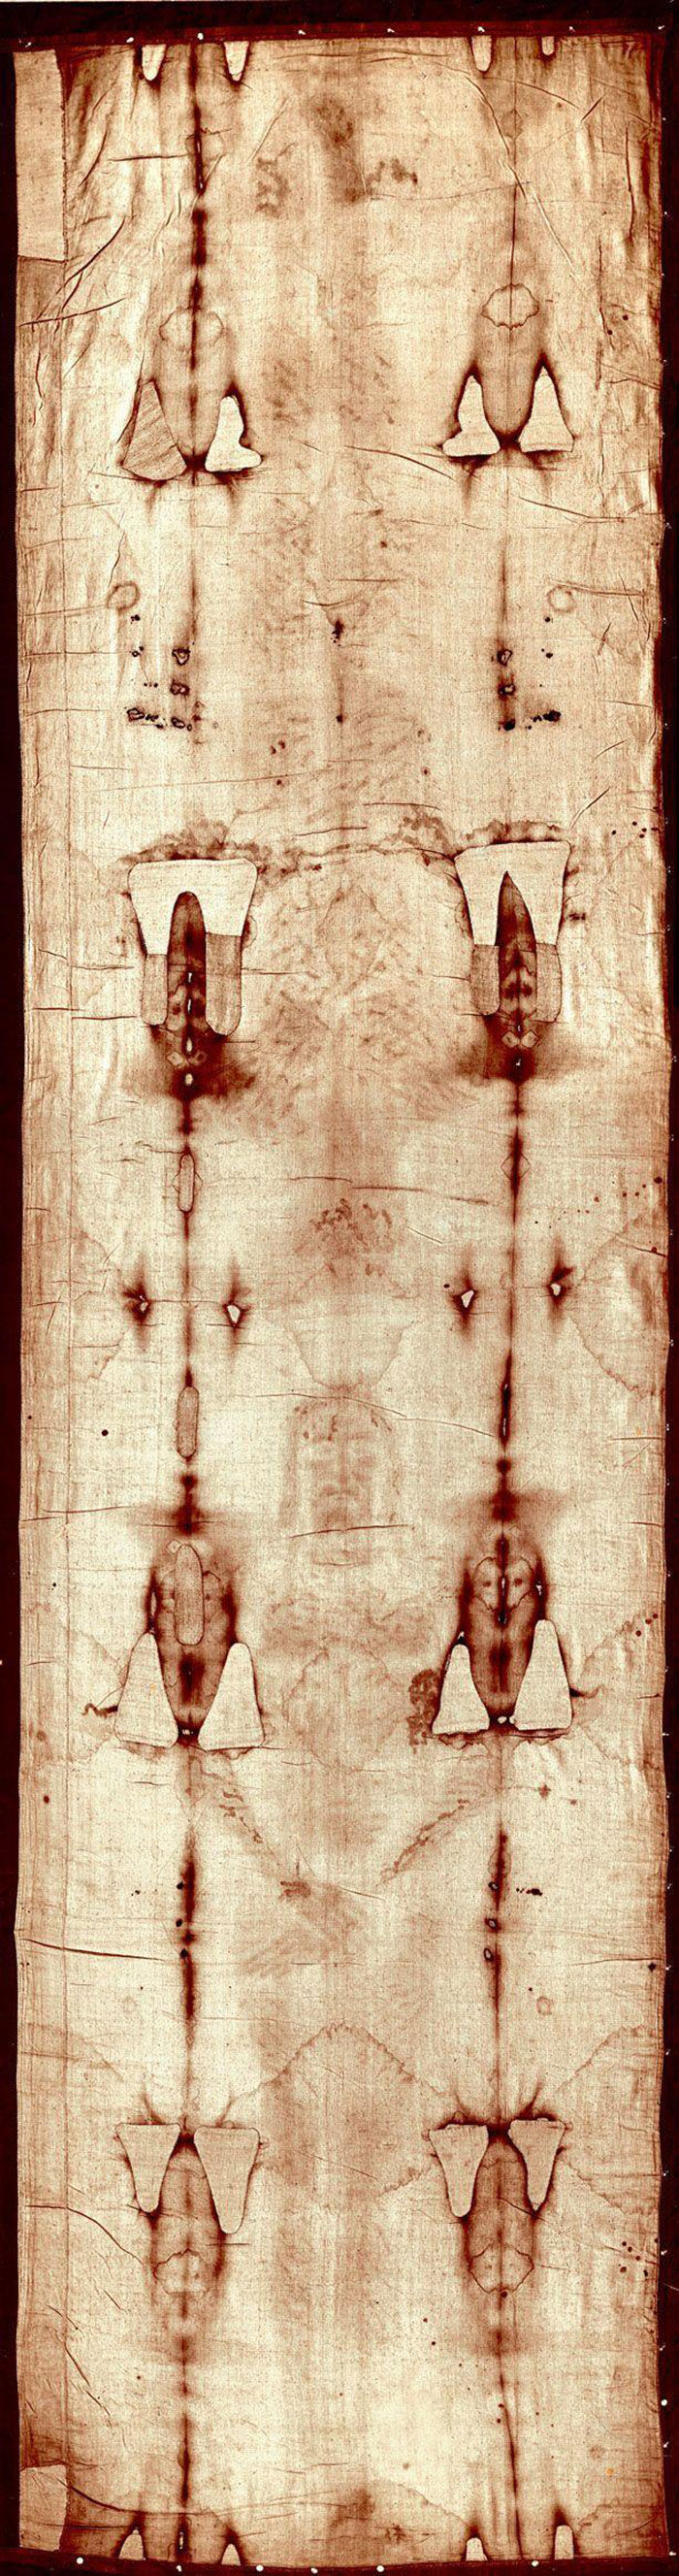 The 'Shroud Of Turin' Was Carbon-Dated To A Thousand Years After Jesus's Birth